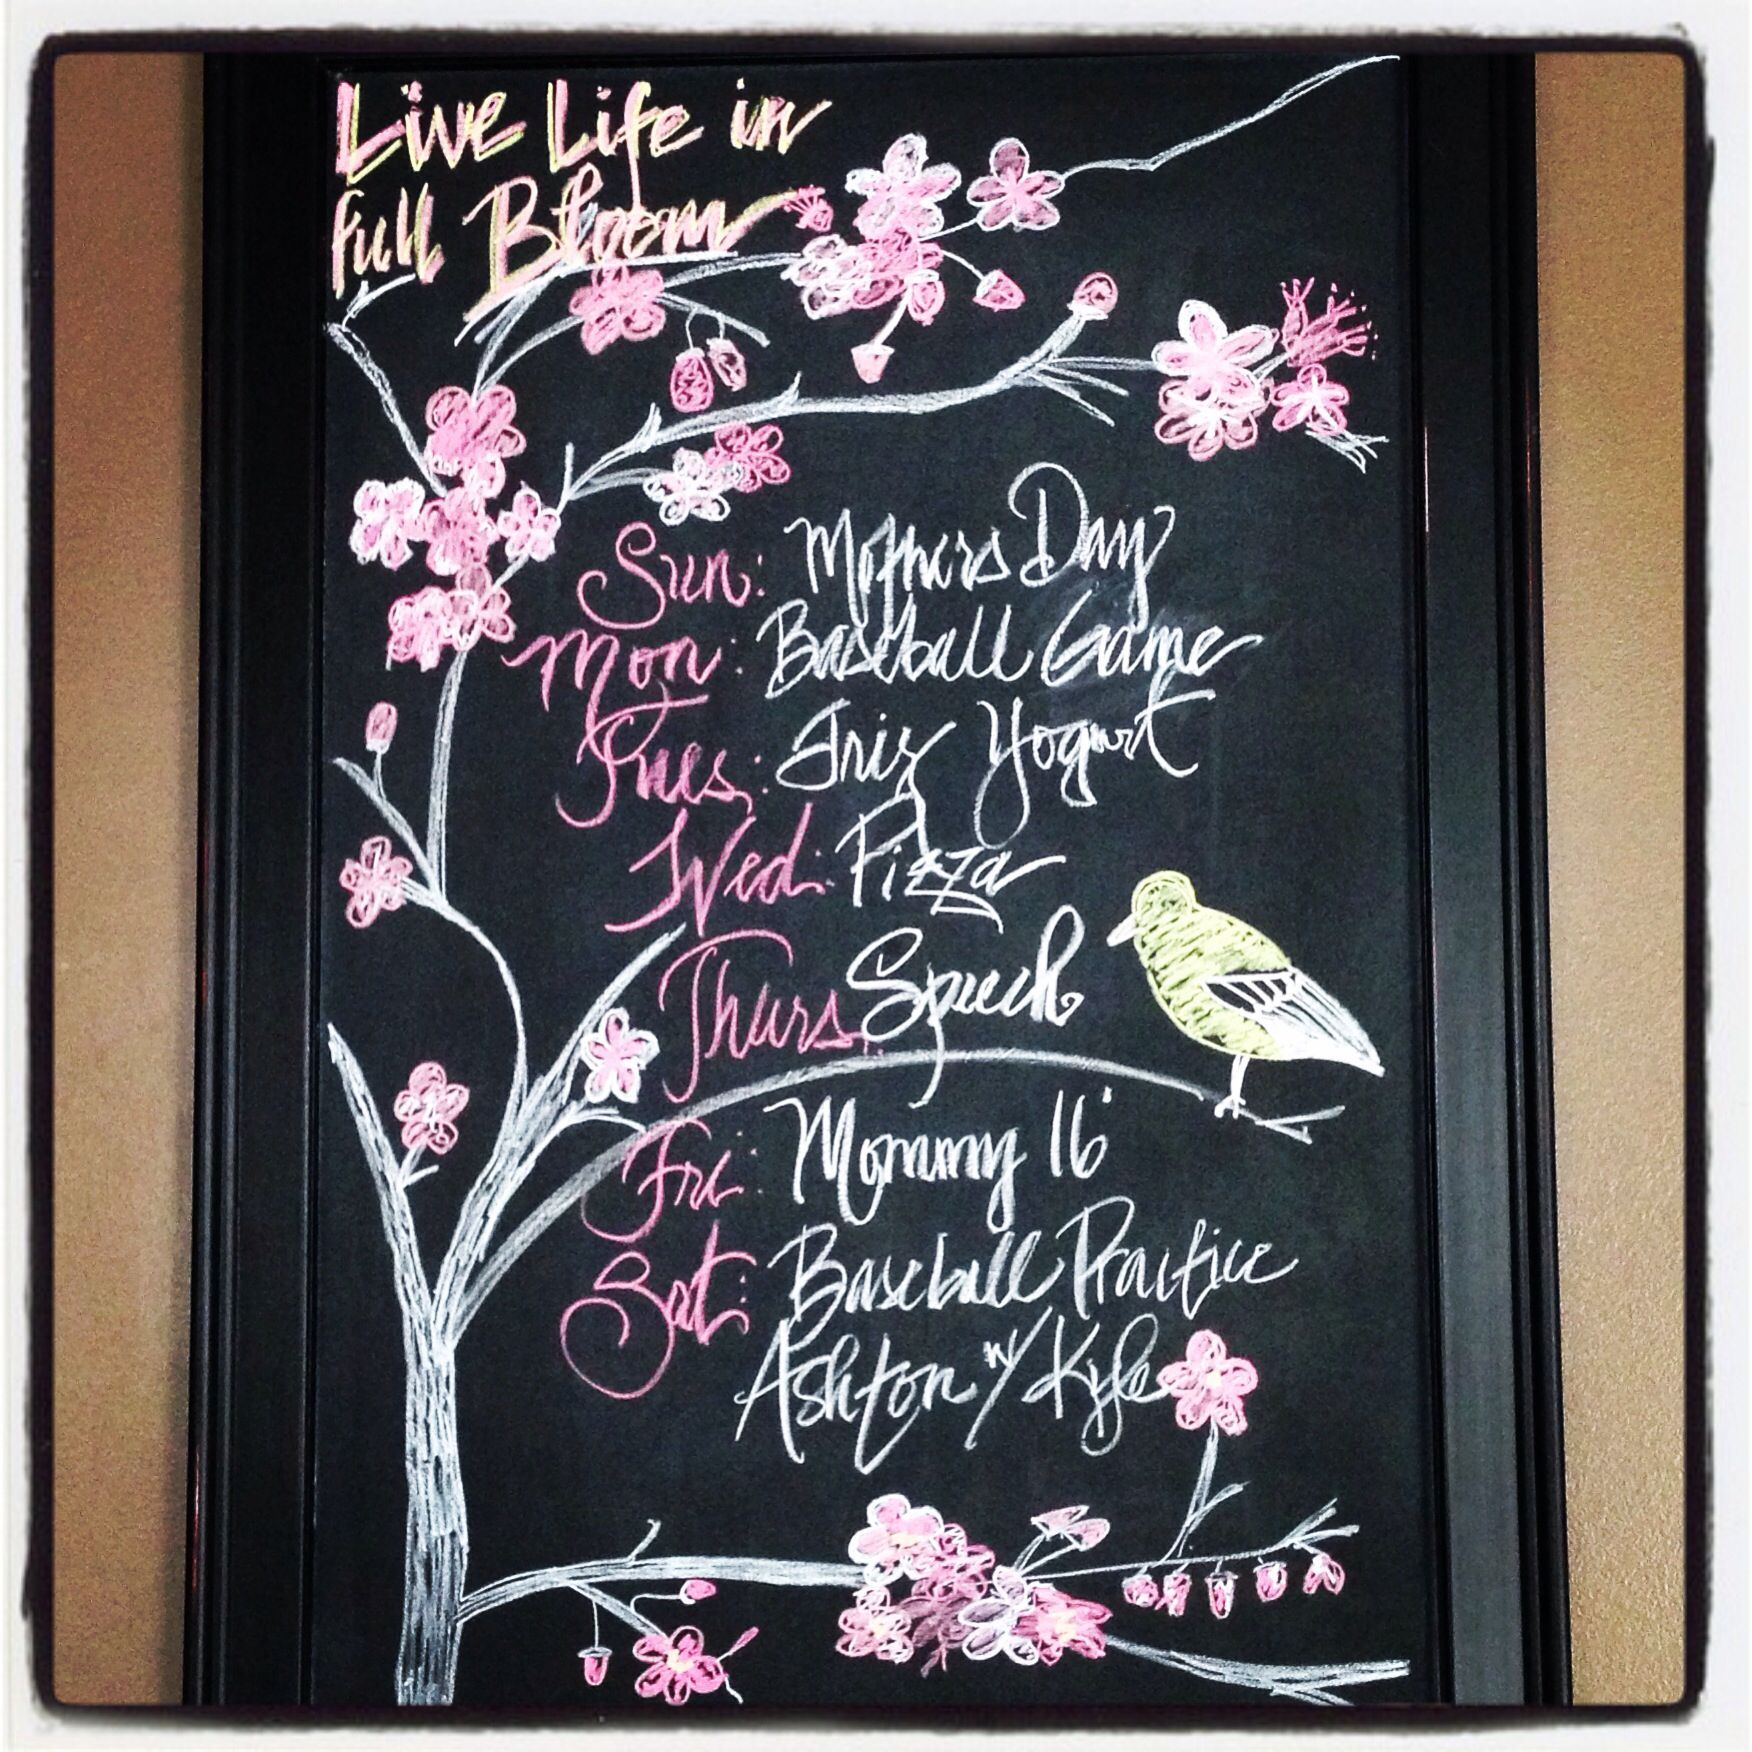 November Chalkboard Calendar Ideas : May chalkboard live life in full bloom weekly